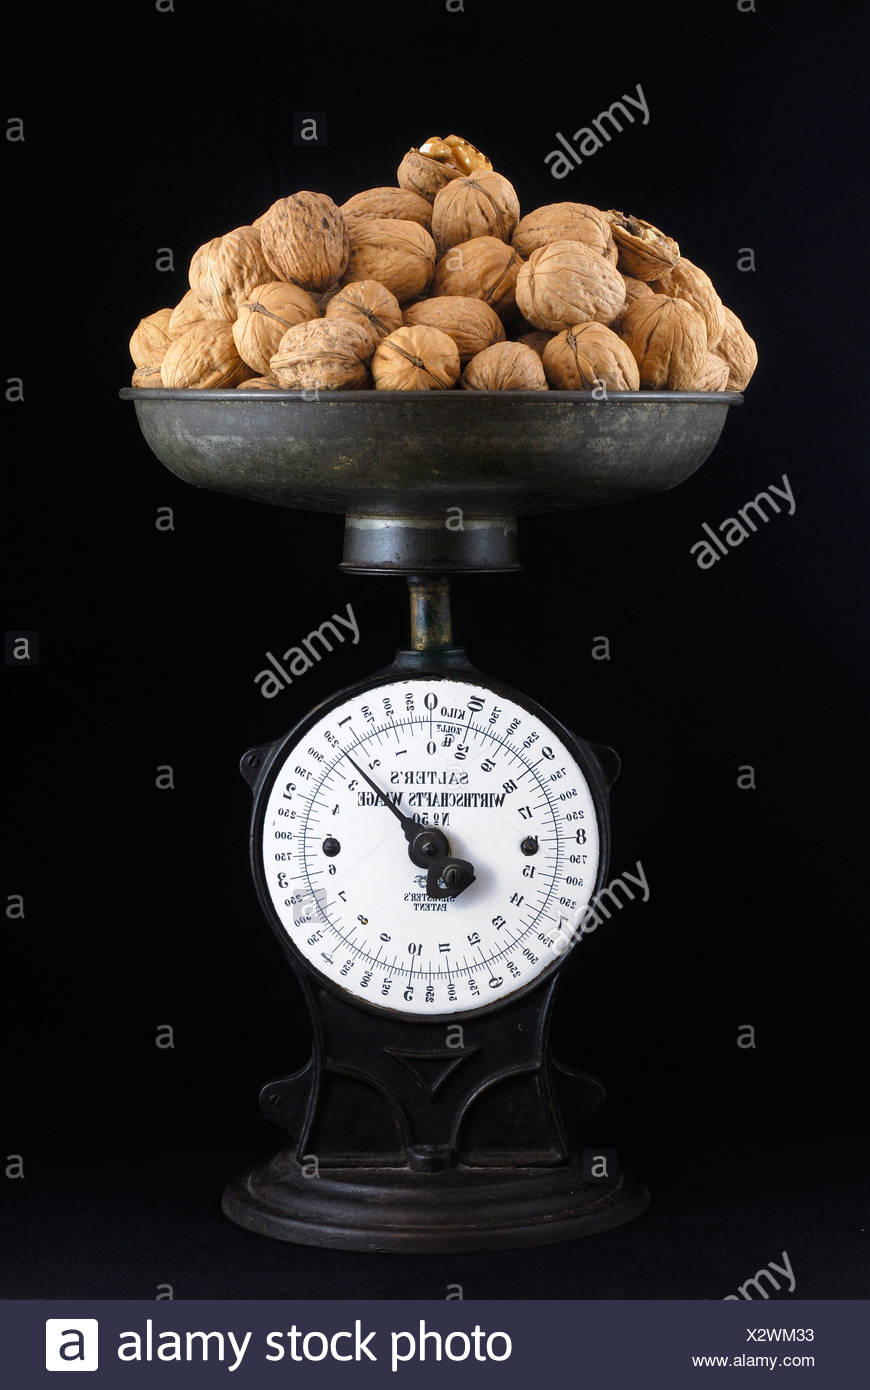 Old-fashioned household scales with lots of walnuts, 250 grammes - Stock Image